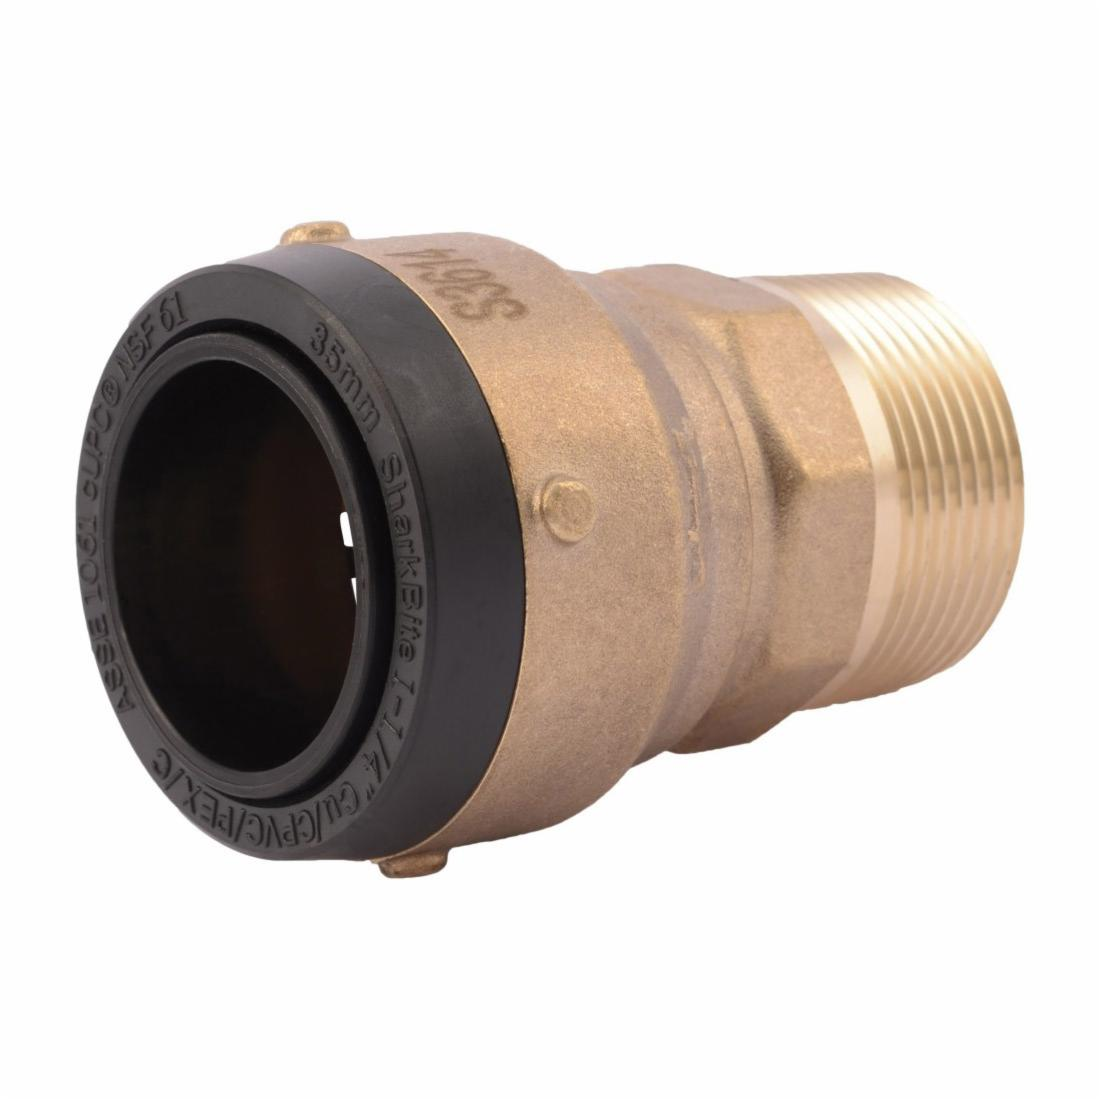 Sharkbite® SB113532M 2XL Large Diameter Male Connector, 1-1/4 in, Push-Fit x MNPT, Brass, Import